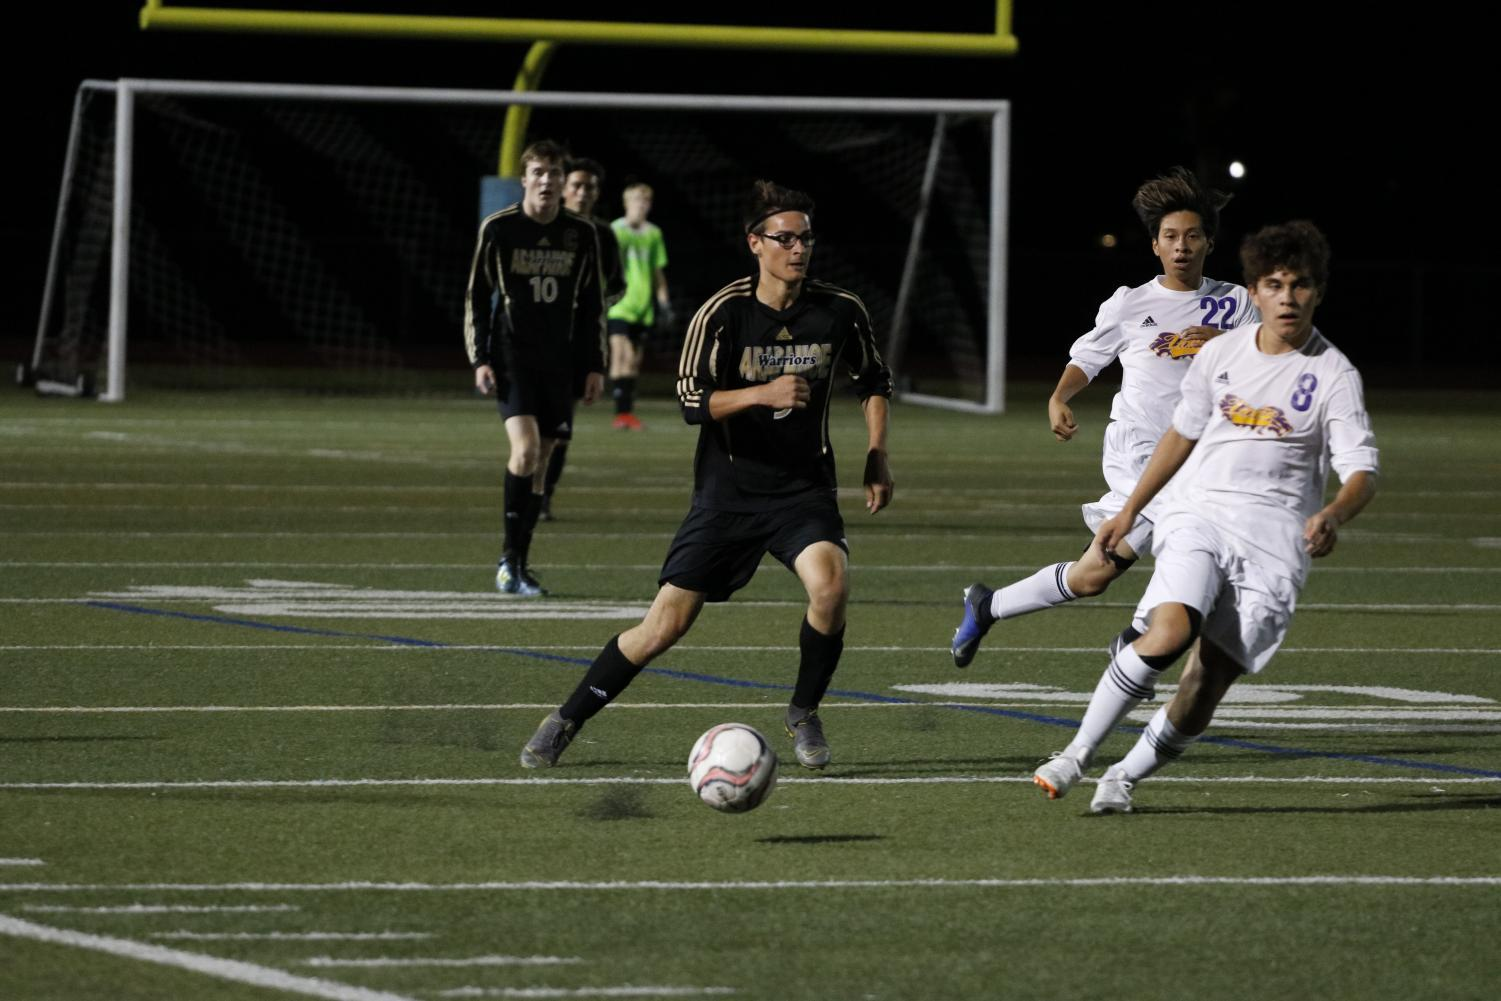 Junior Isaac Vigoren dribbles the ball down the field in a game against Littleton High School.